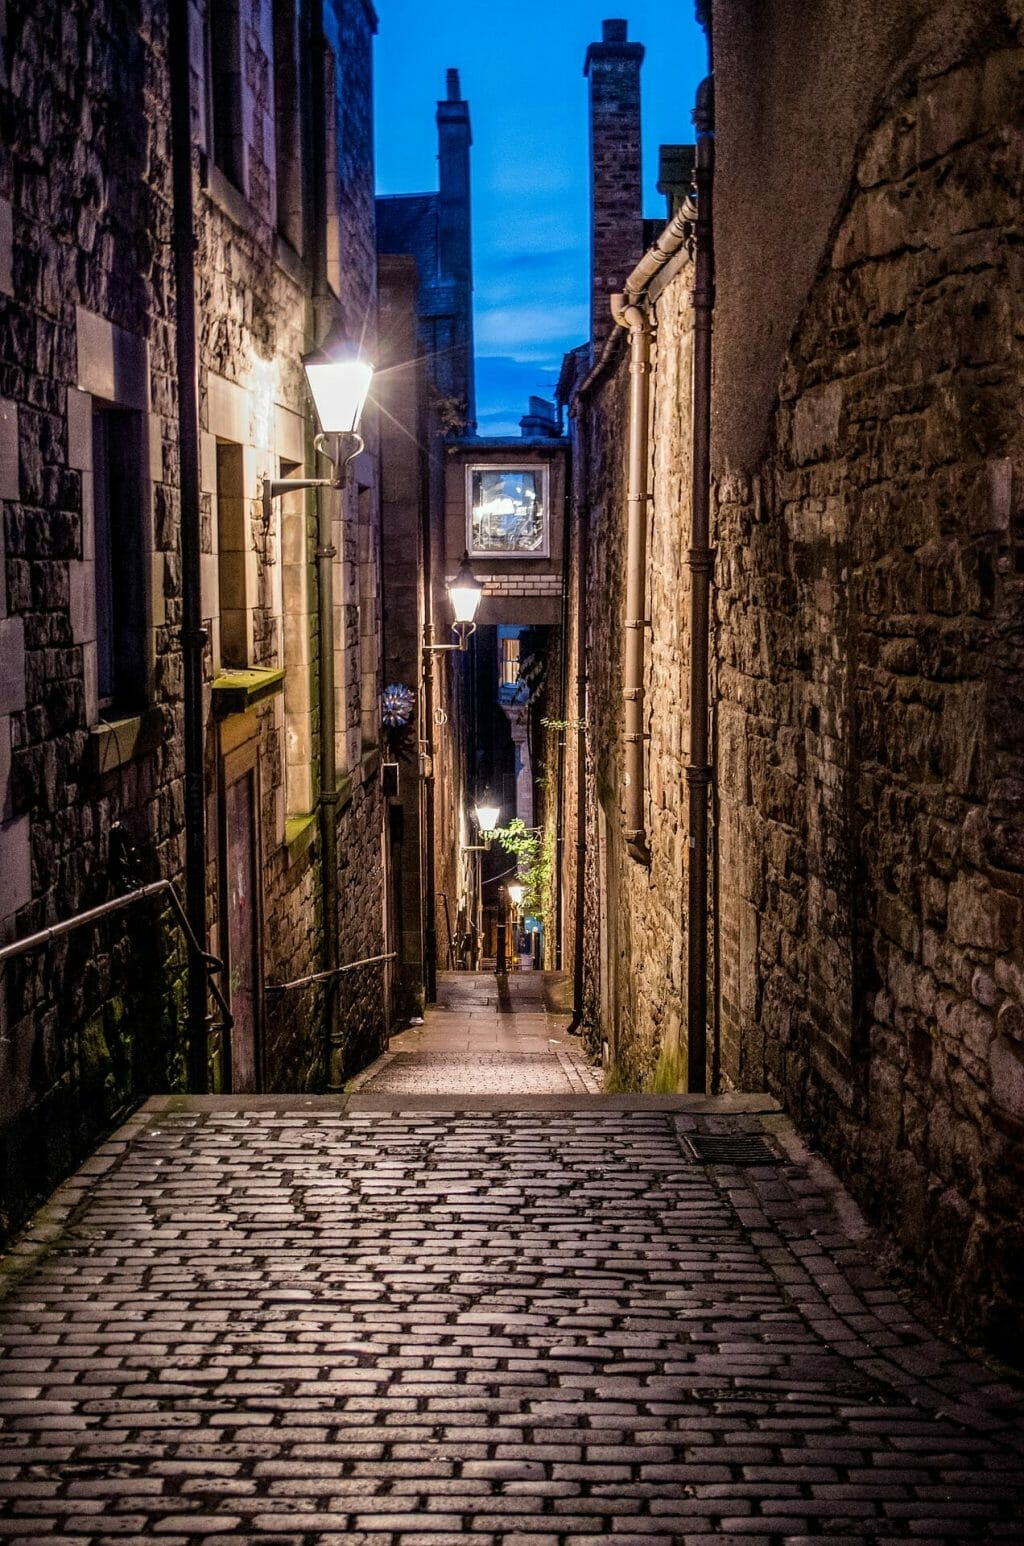 Cobblestone alley in Edinburgh in the evening with a lamp glowing with light